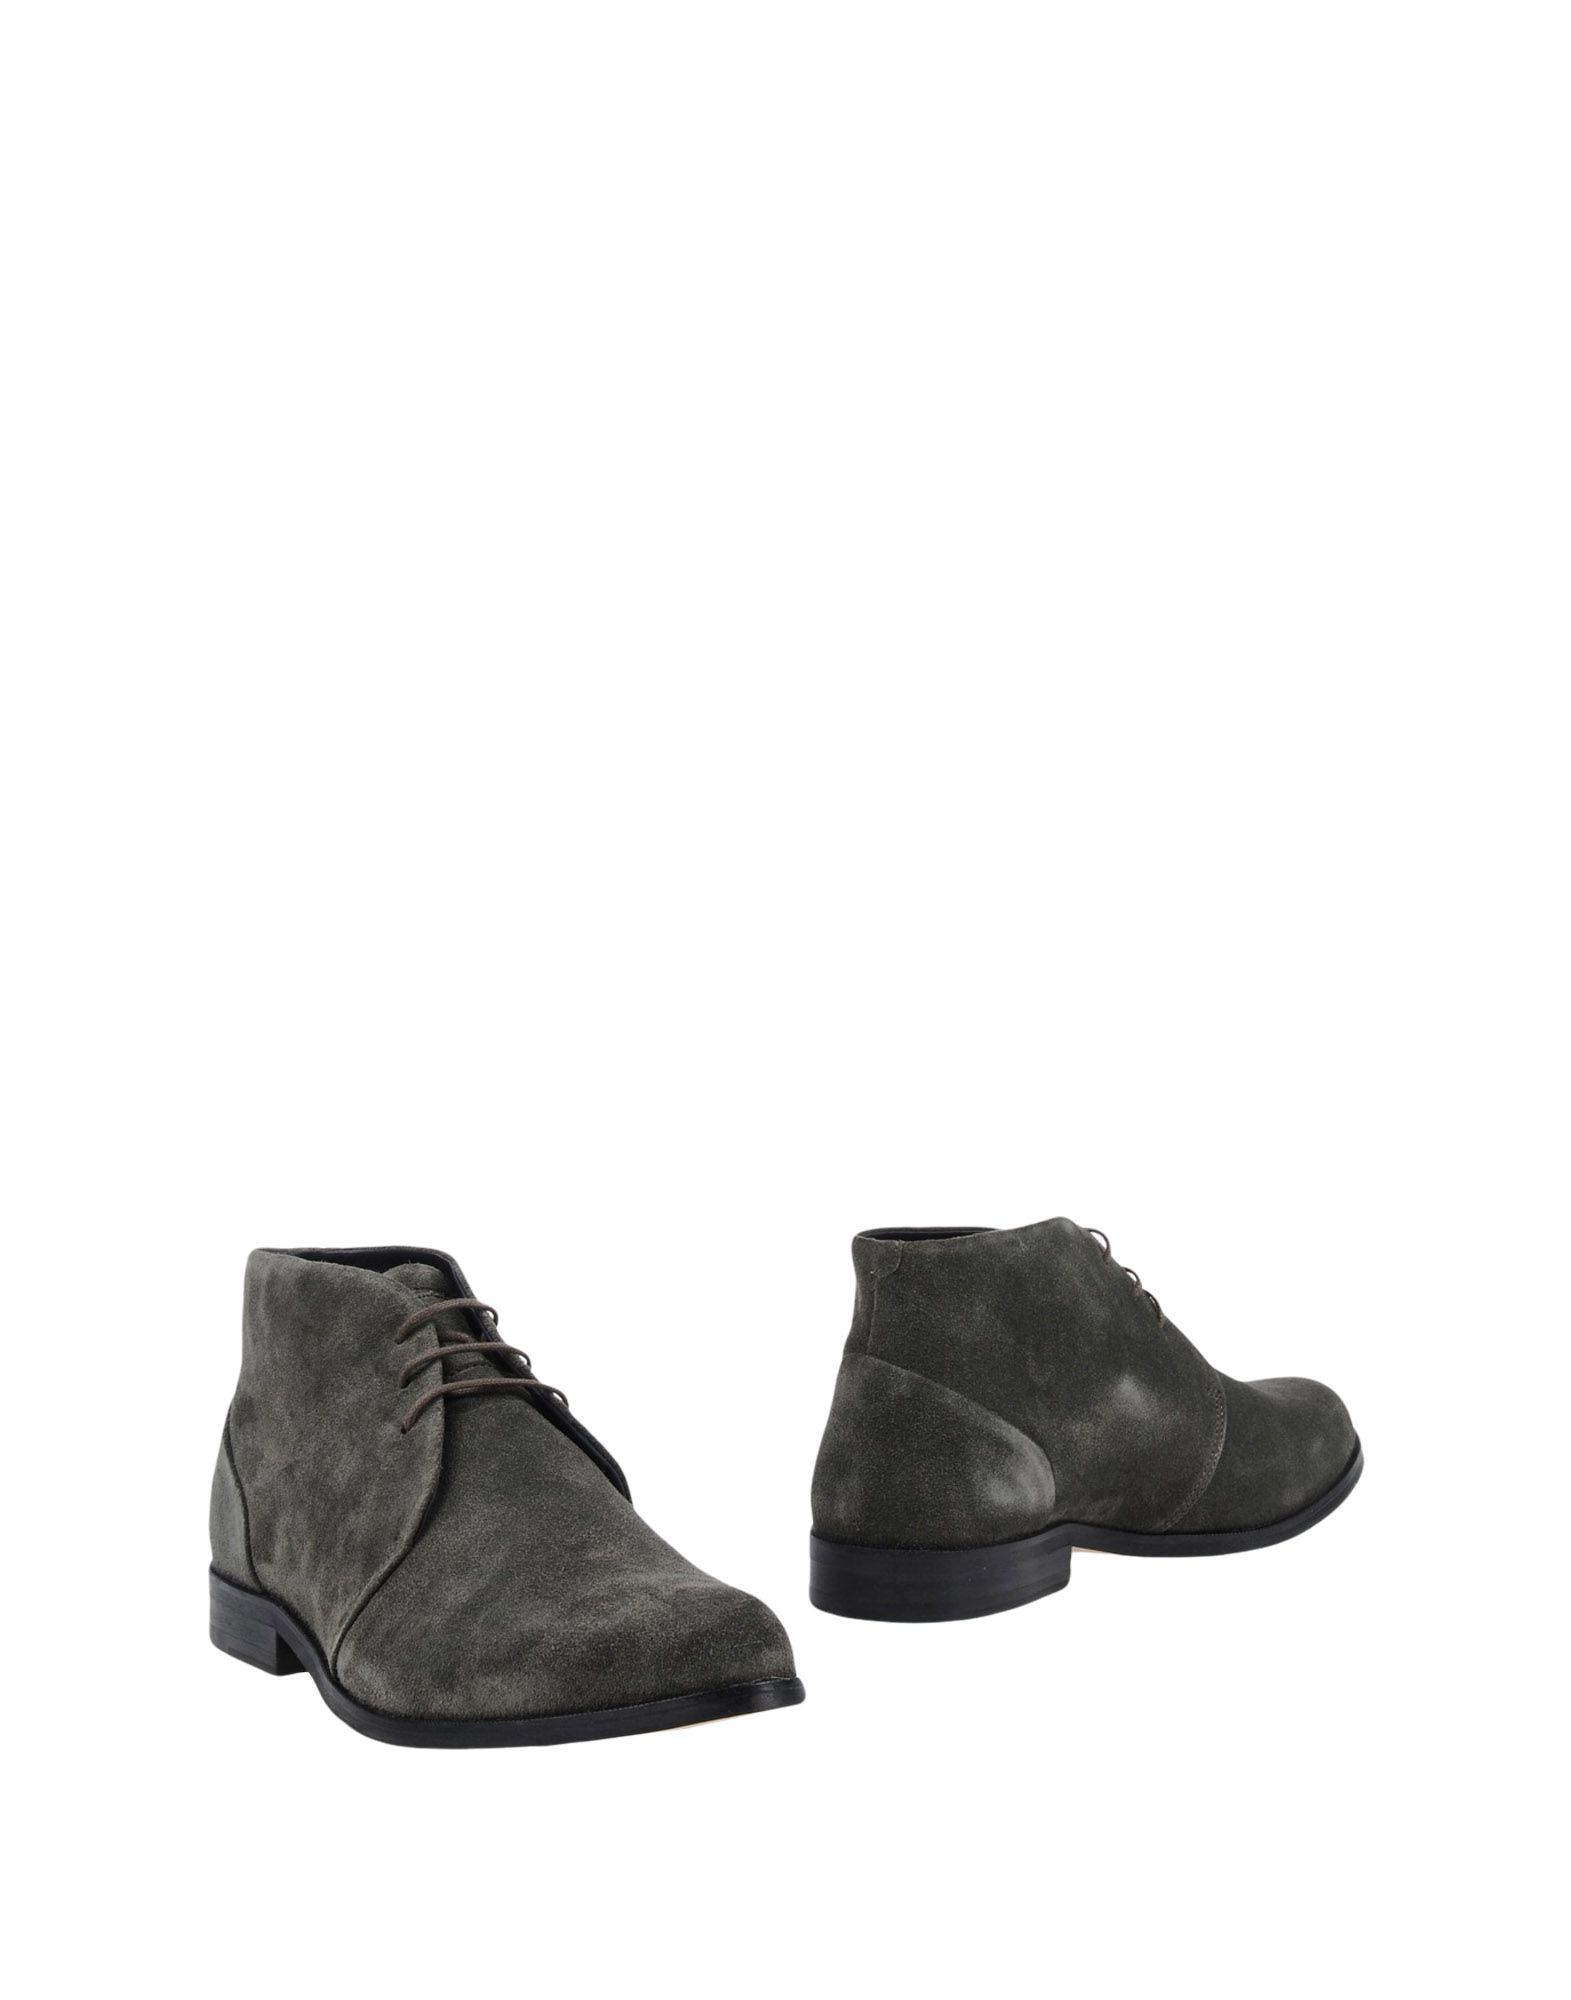 Royal Republiq Boots - Men Royal Republiq Boots online on 11461044FH  United Kingdom - 11461044FH on 90cc2e